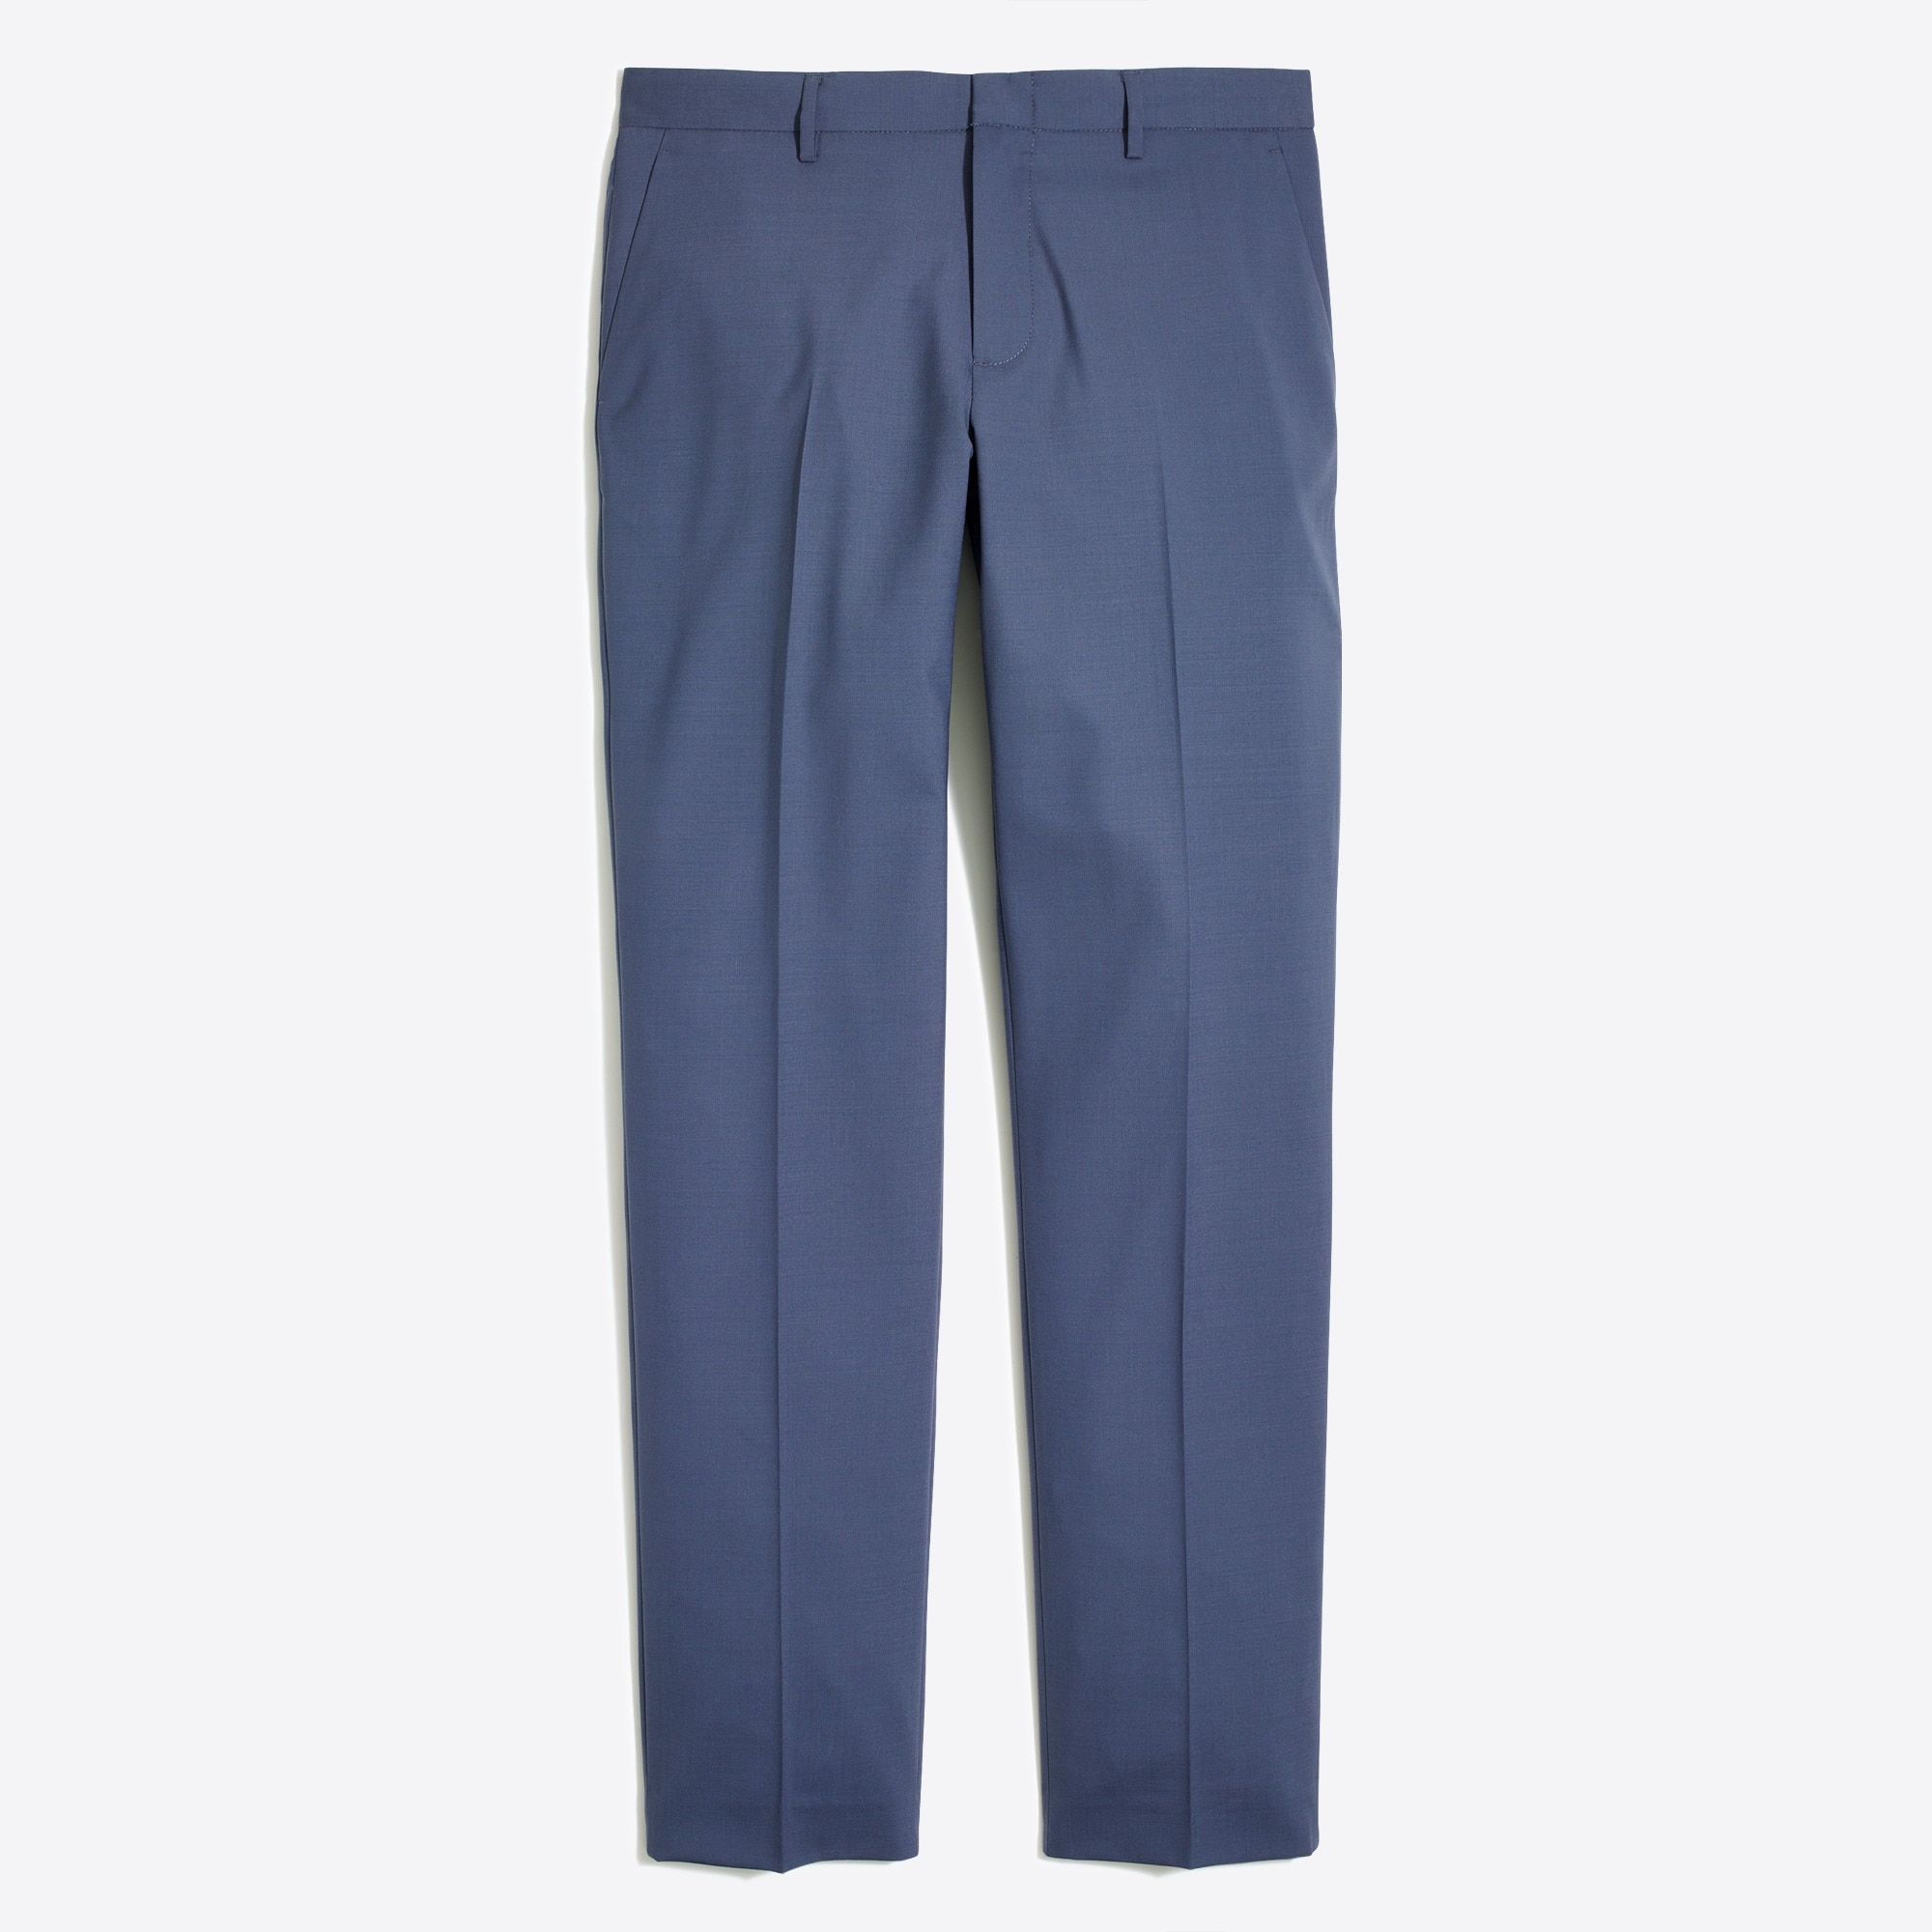 slim-fit thompson suit pant in lightweight flex wool : factorymen dress pants